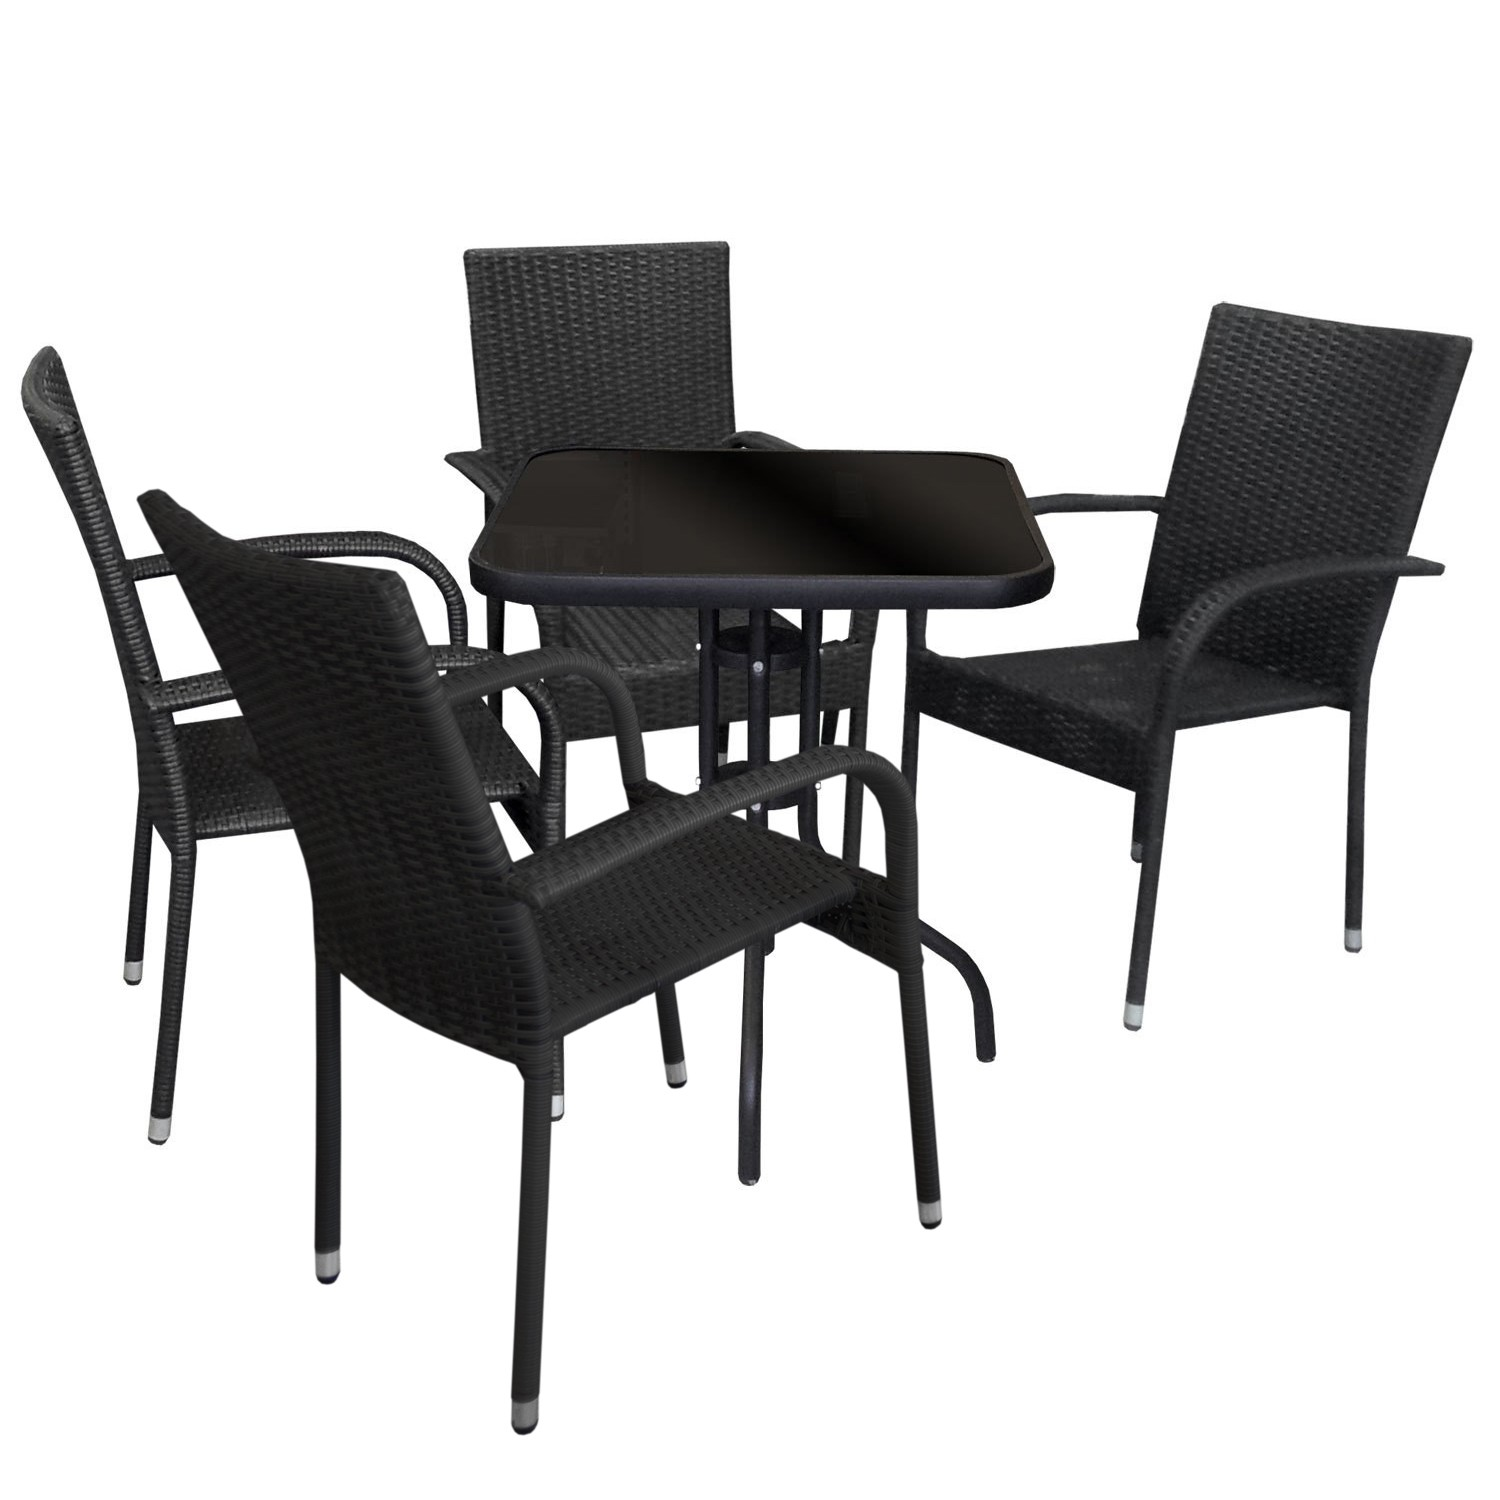 wohaga bistrotisch 60x60cm mit schwarzer glasplatte schwarz garten gartenm bel gartentische. Black Bedroom Furniture Sets. Home Design Ideas